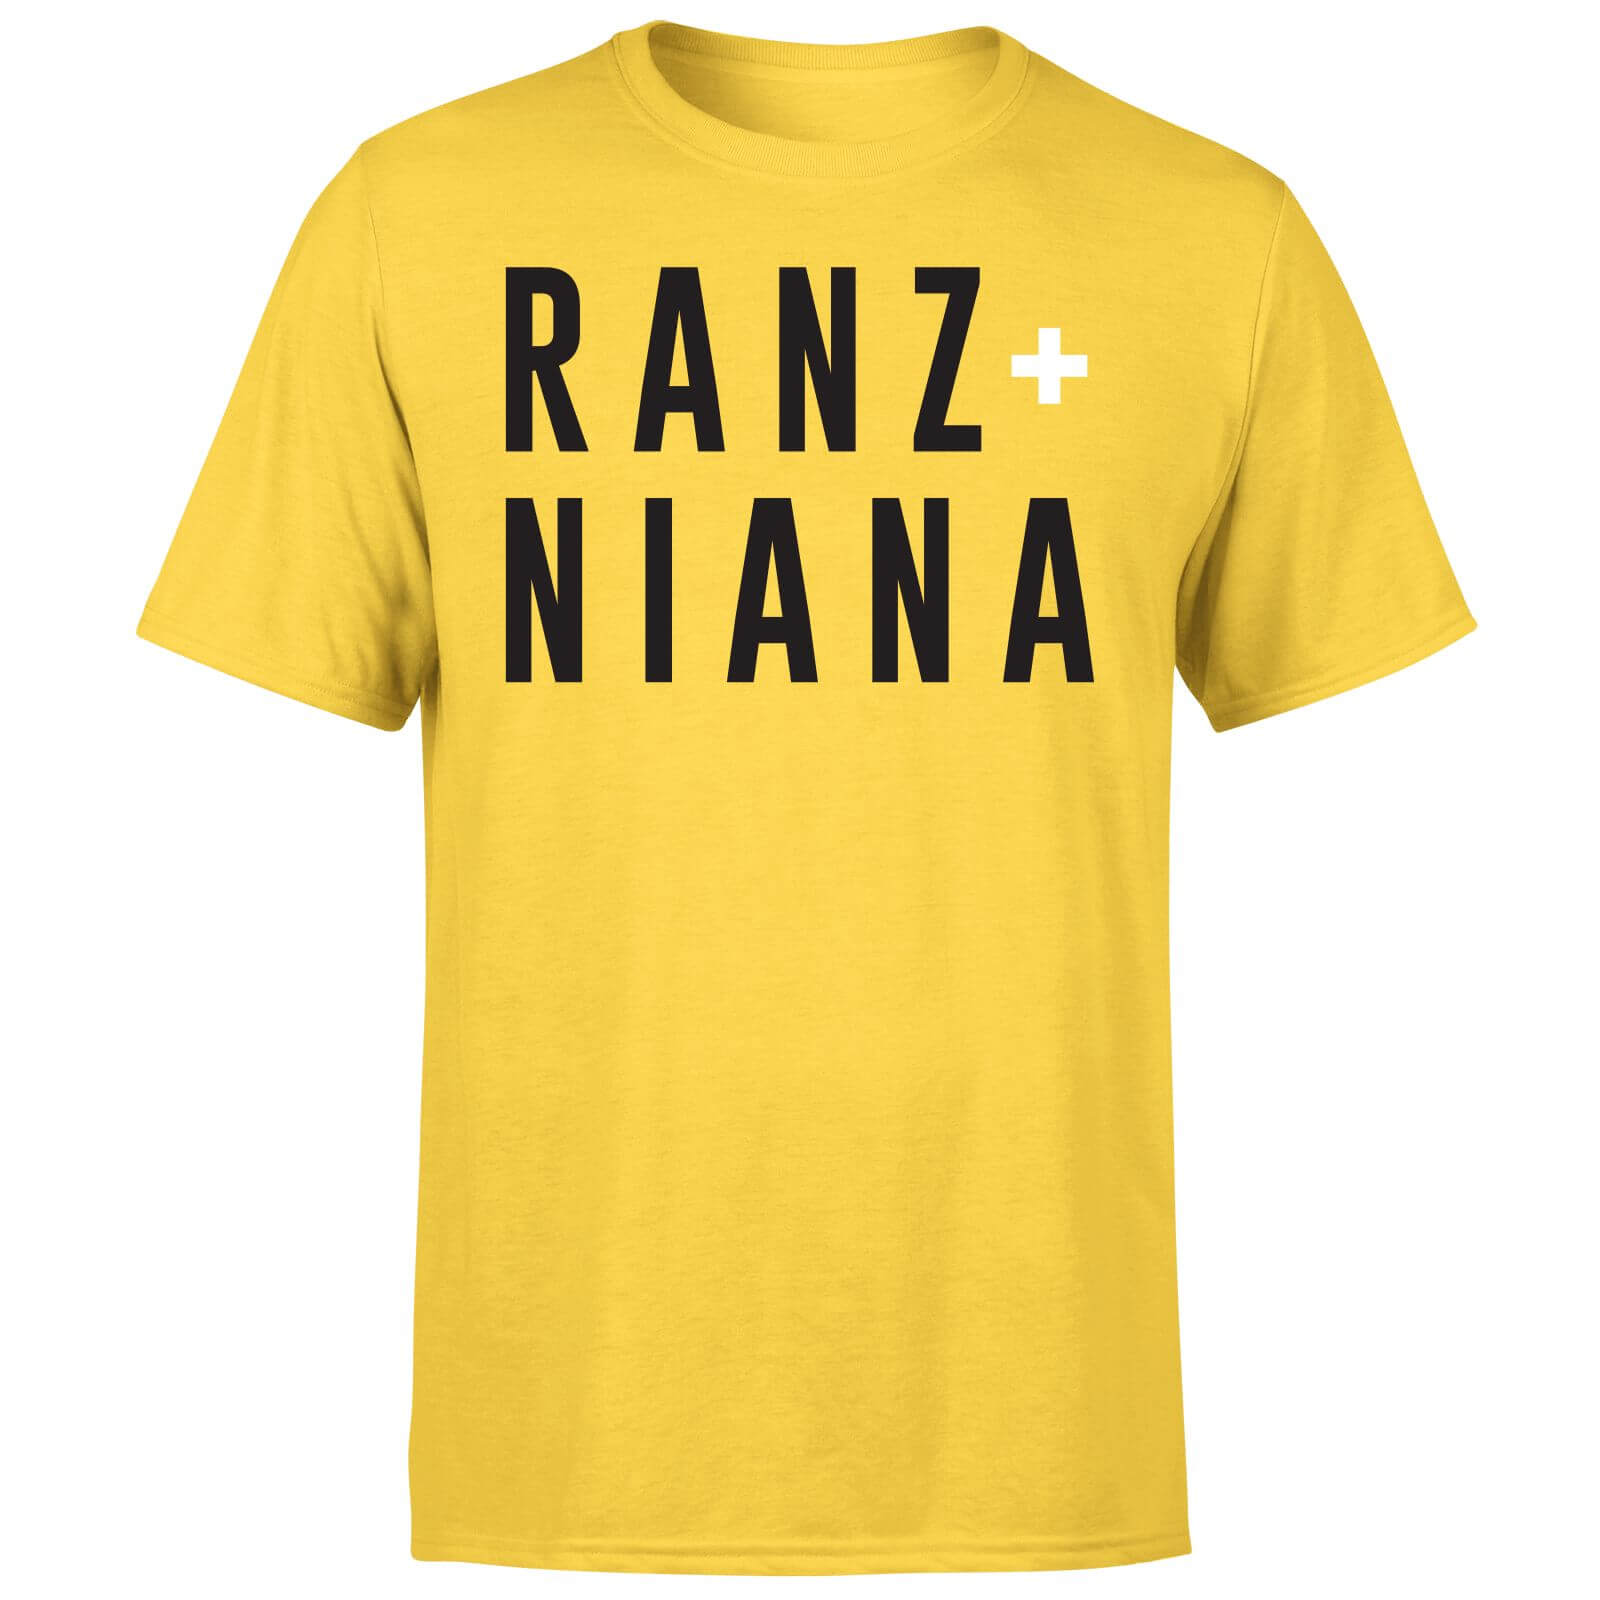 Ranz + Niana T-Shirt - Yellow